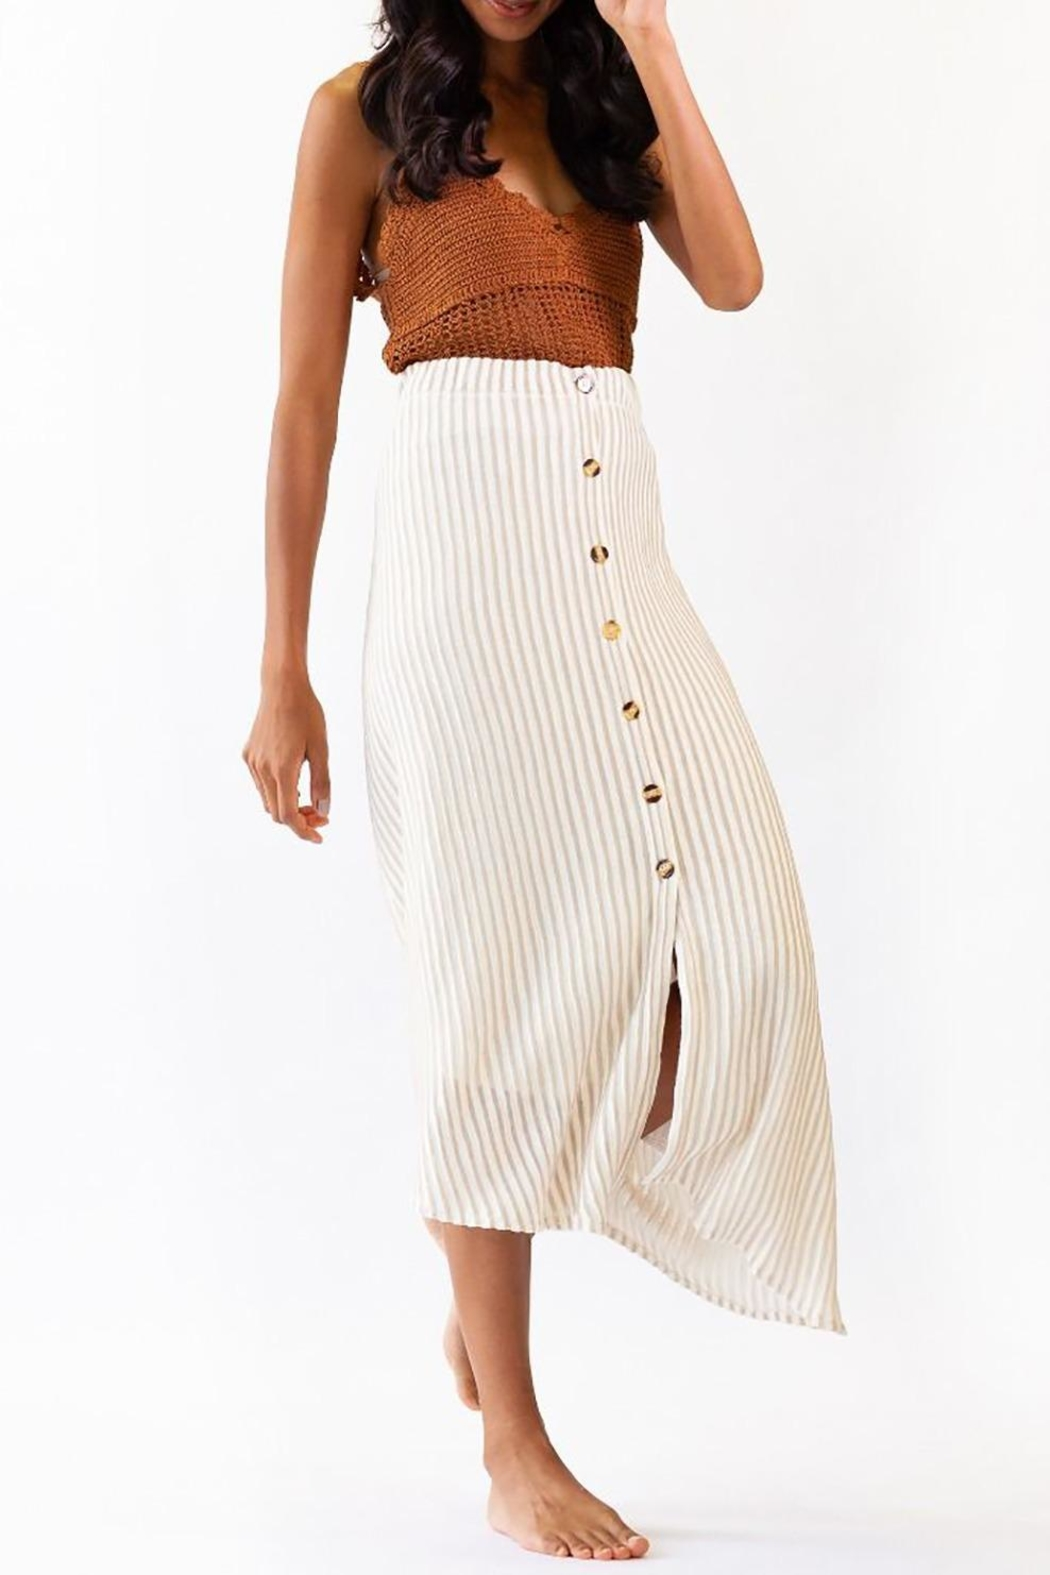 Pink Martini Collection Bahama Skirt - Side Cropped Image